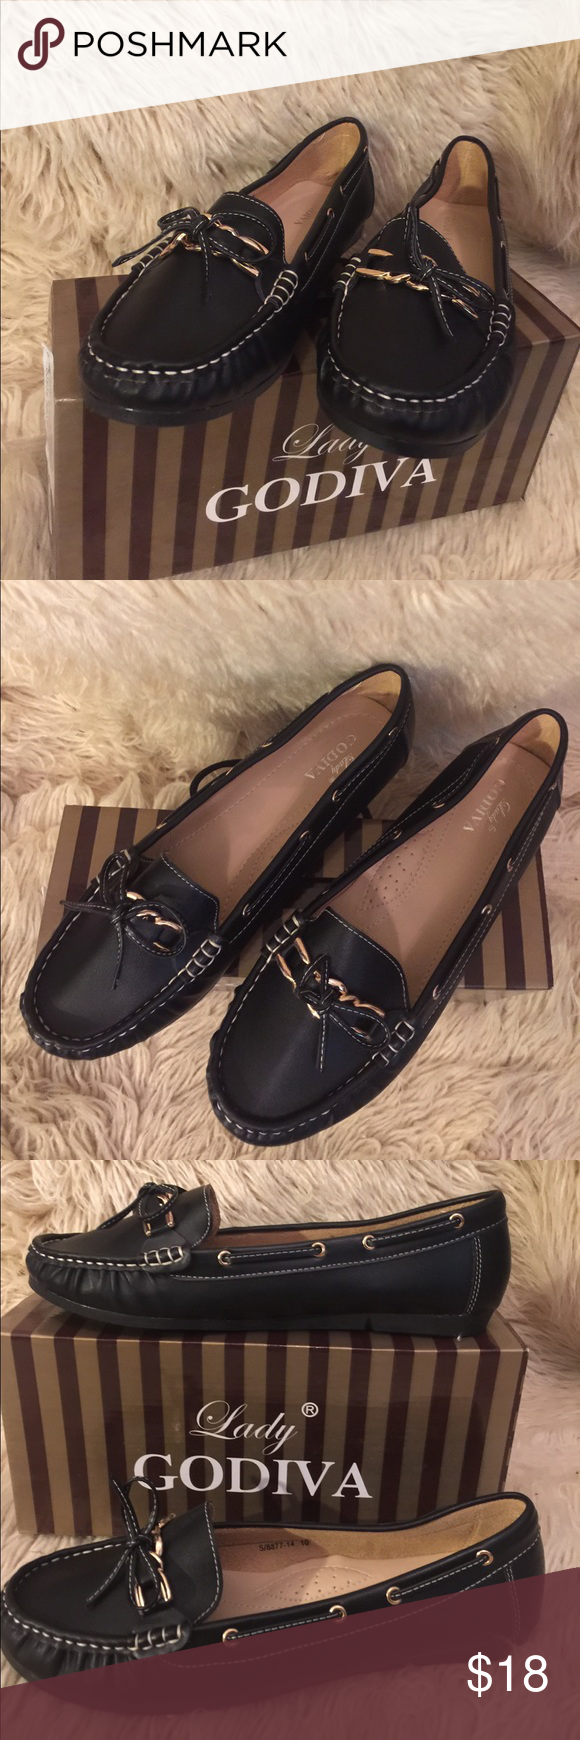 6b319749b849 Black LADY GODIVA Women s Boat Shoes NWT